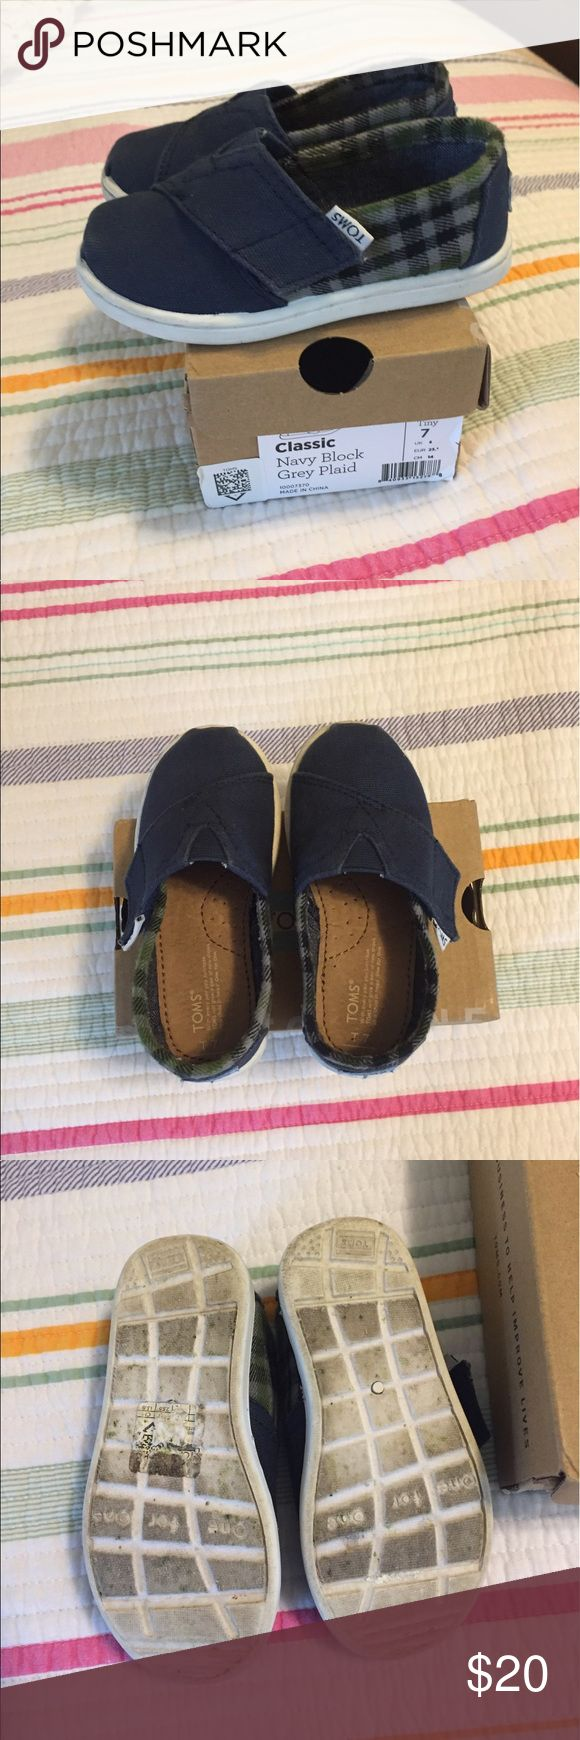 Navy play Tiny Toms size 7 These cute Tiny Toms are size 7 and in great condition. My son wore them just a few times. The bottoms aren't really worn just discolored from walking around. Velcro closure on the sides. Smoke-free home Toms Shoes Sneakers